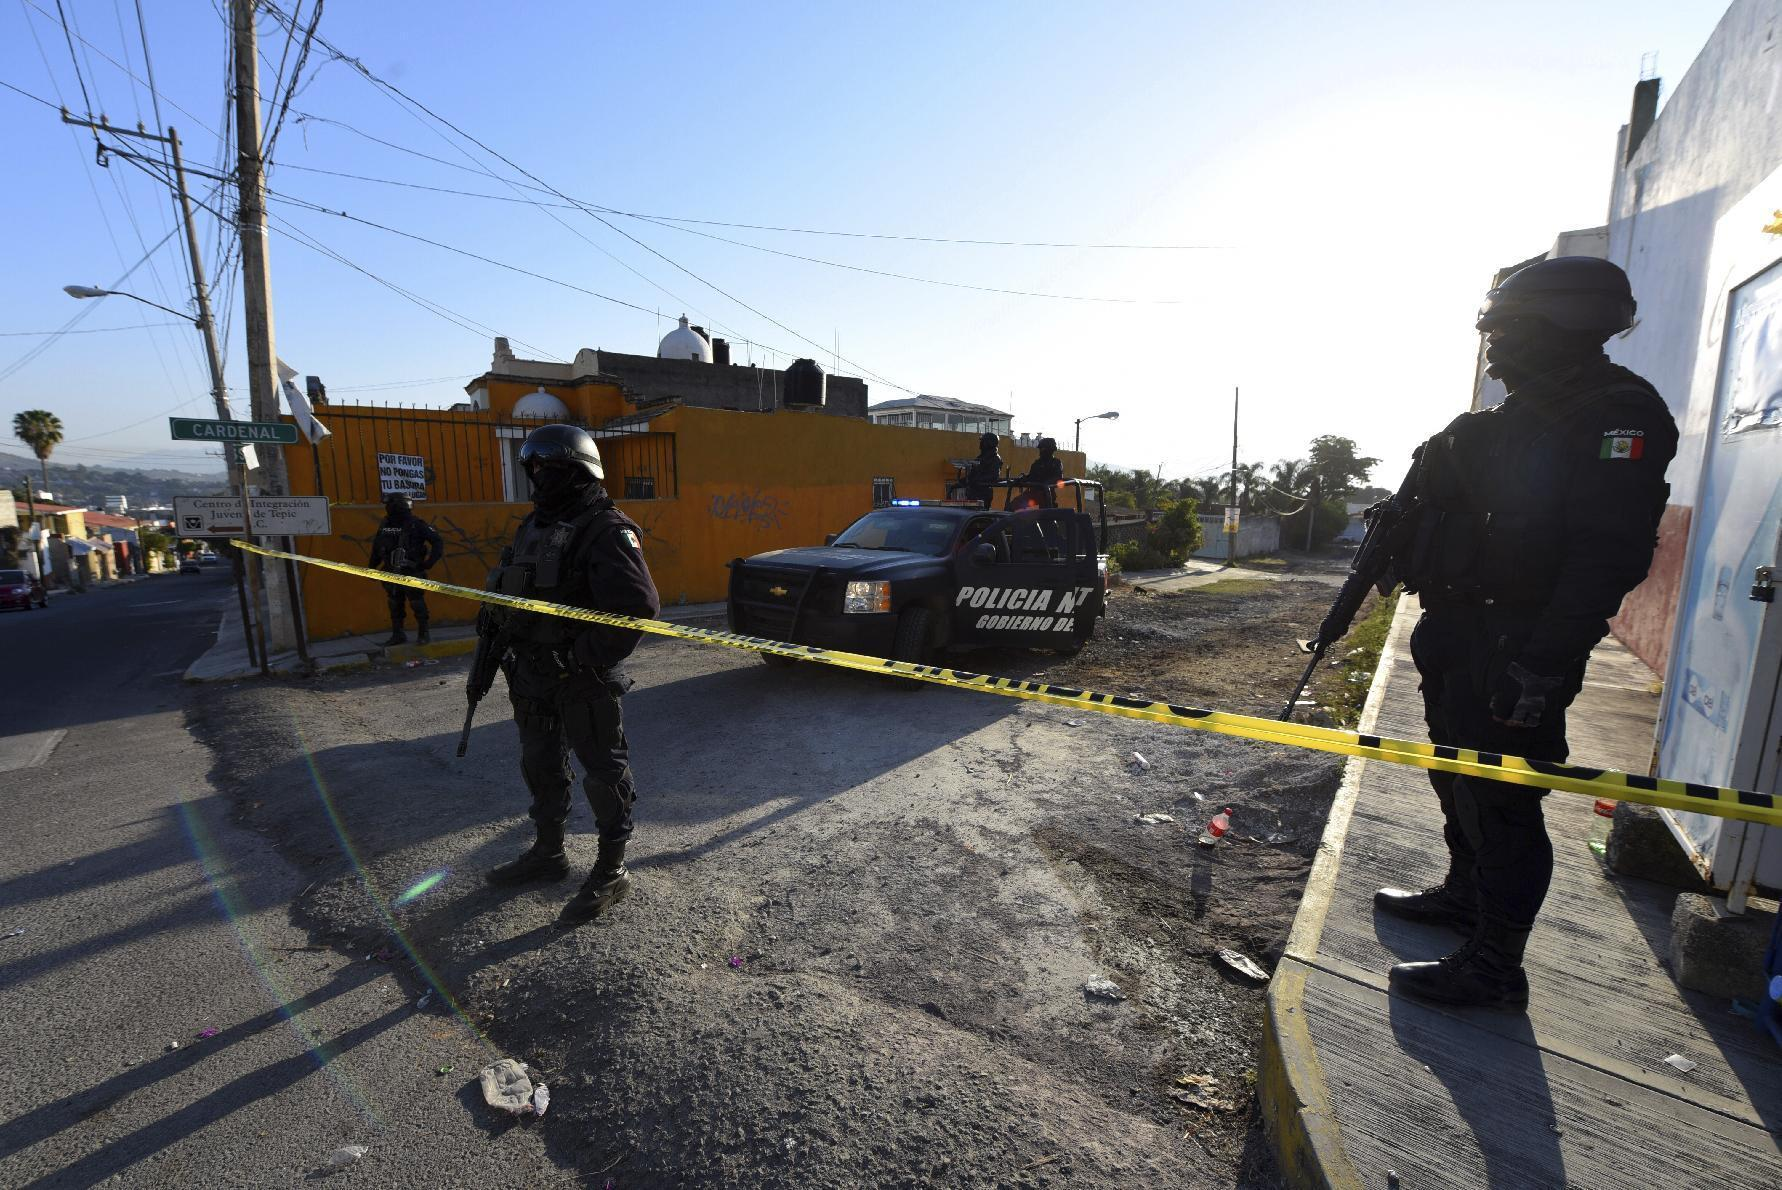 Mexico: Cartel capo killed in shootout with federal forces